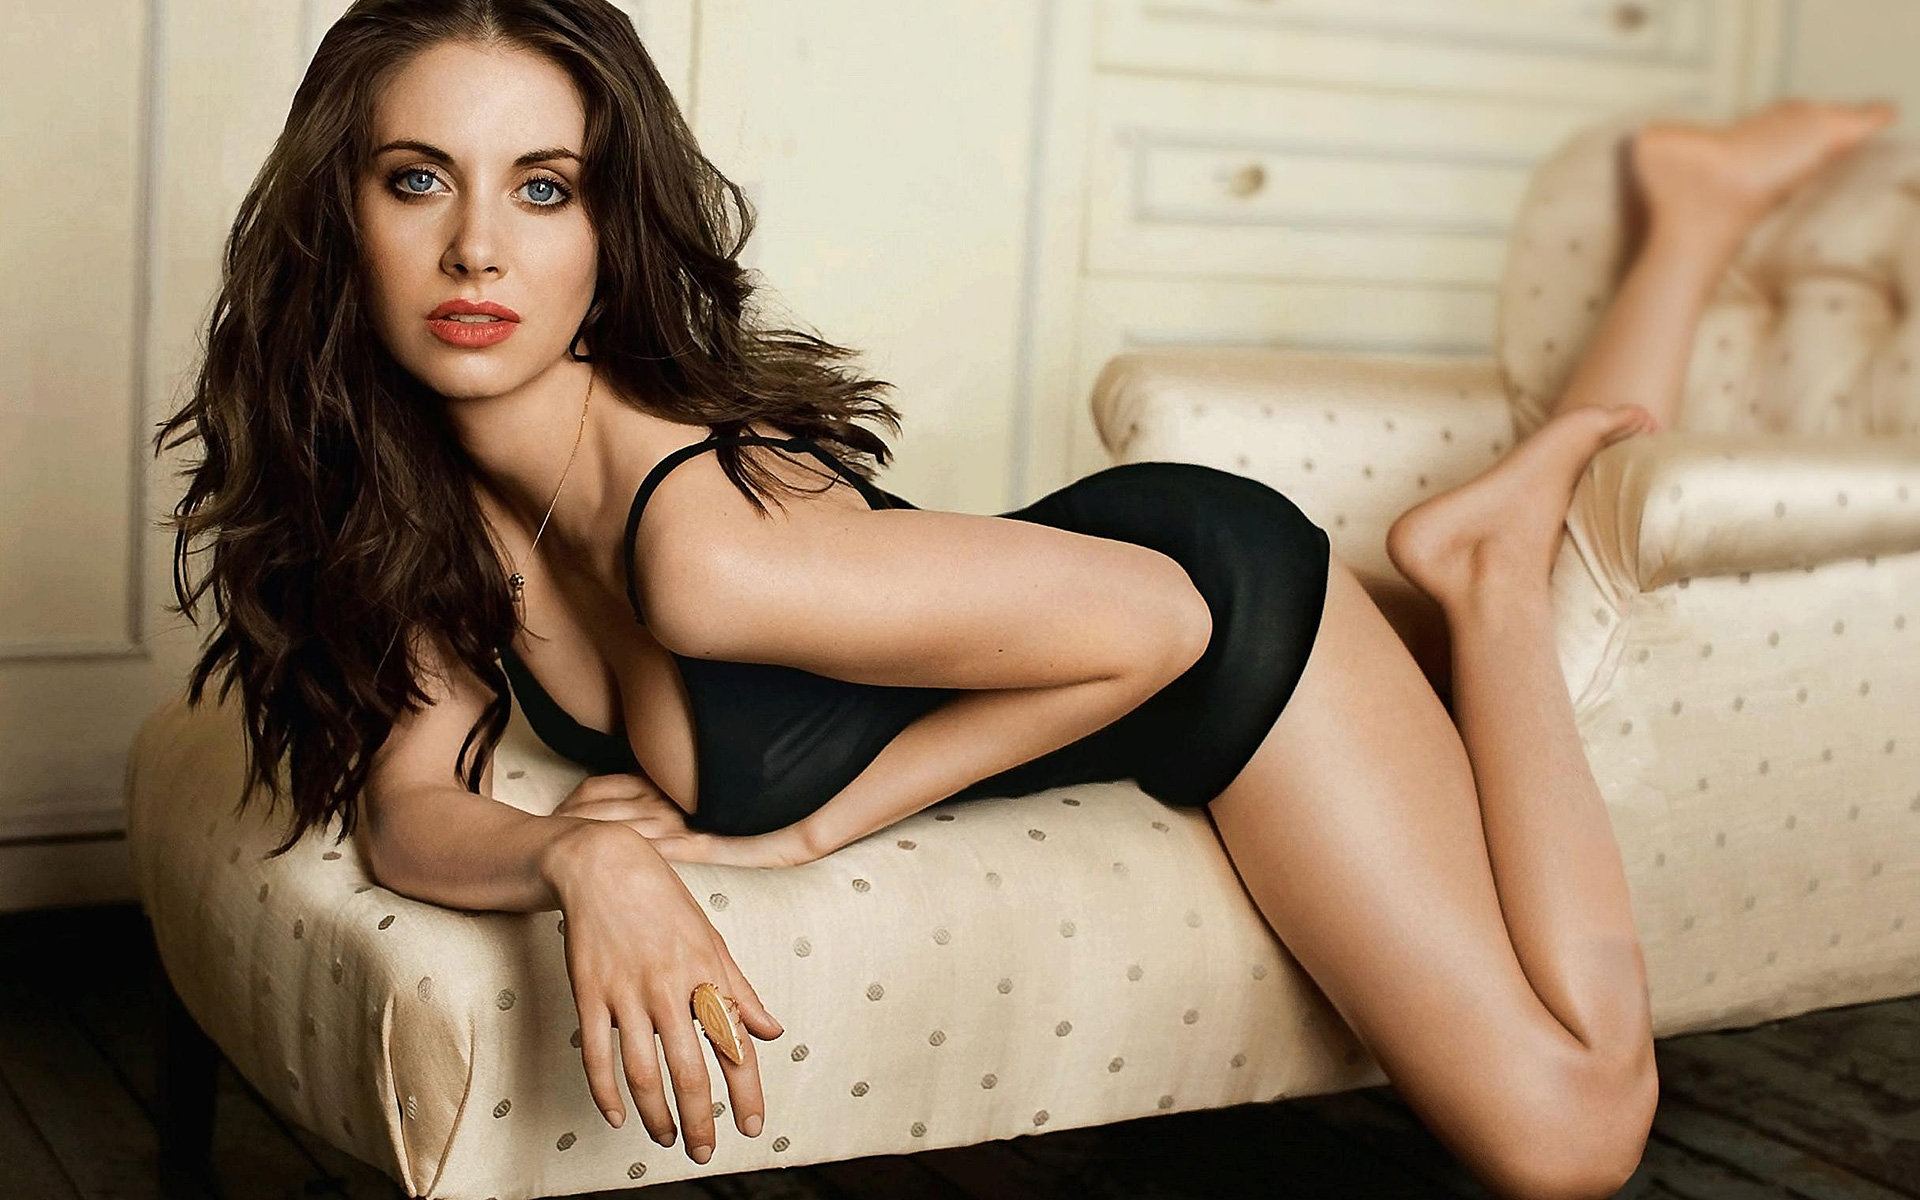 Alison Brie leaked fappening photo